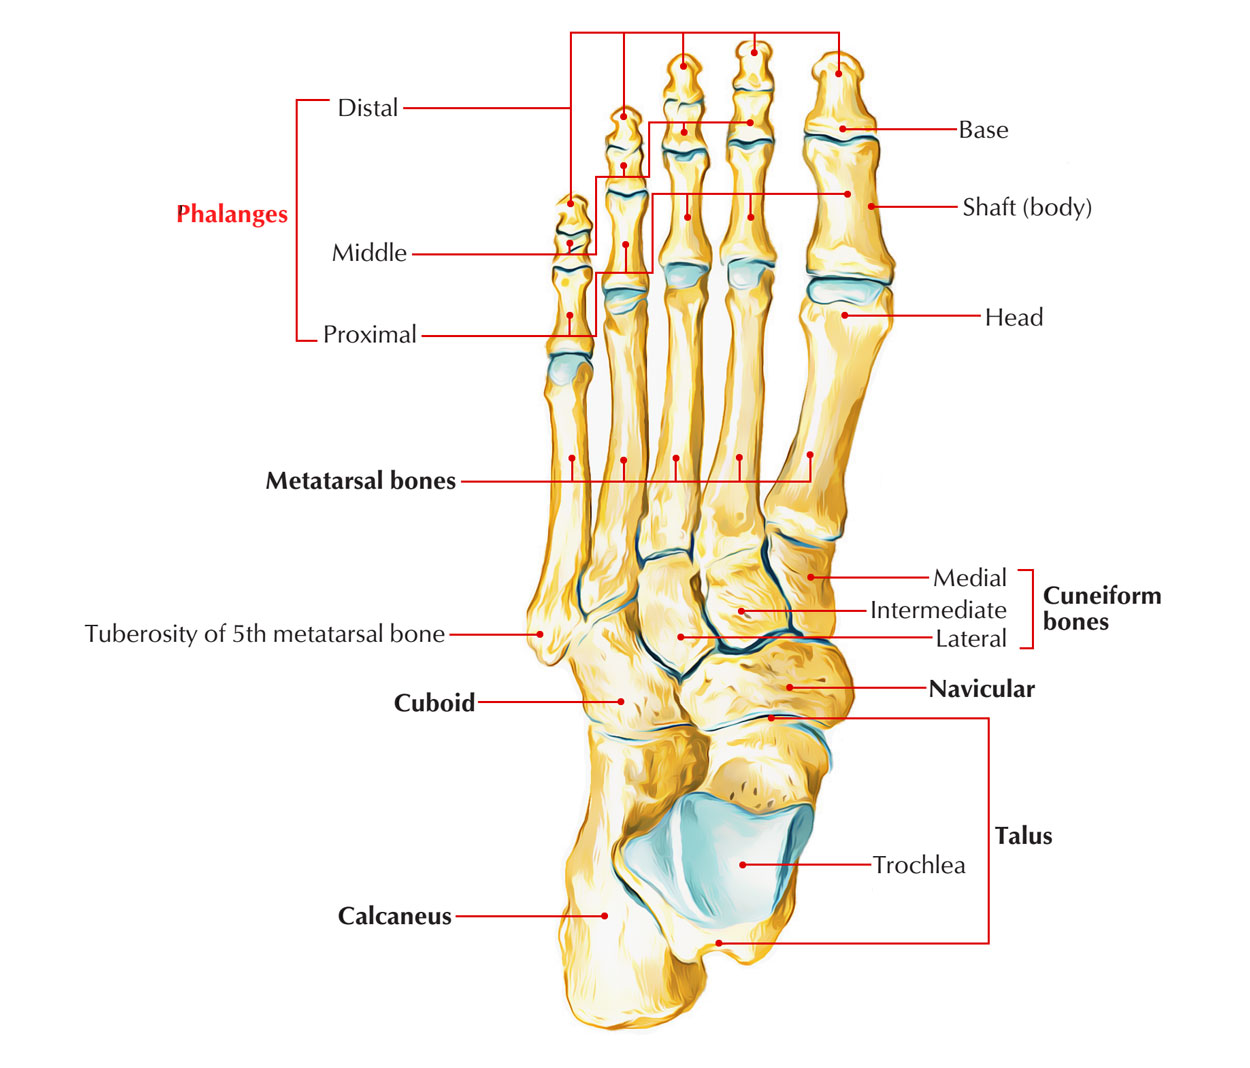 Easy Notes On 【Skeleton of the Foot】Learn in Just 6 Minutes!